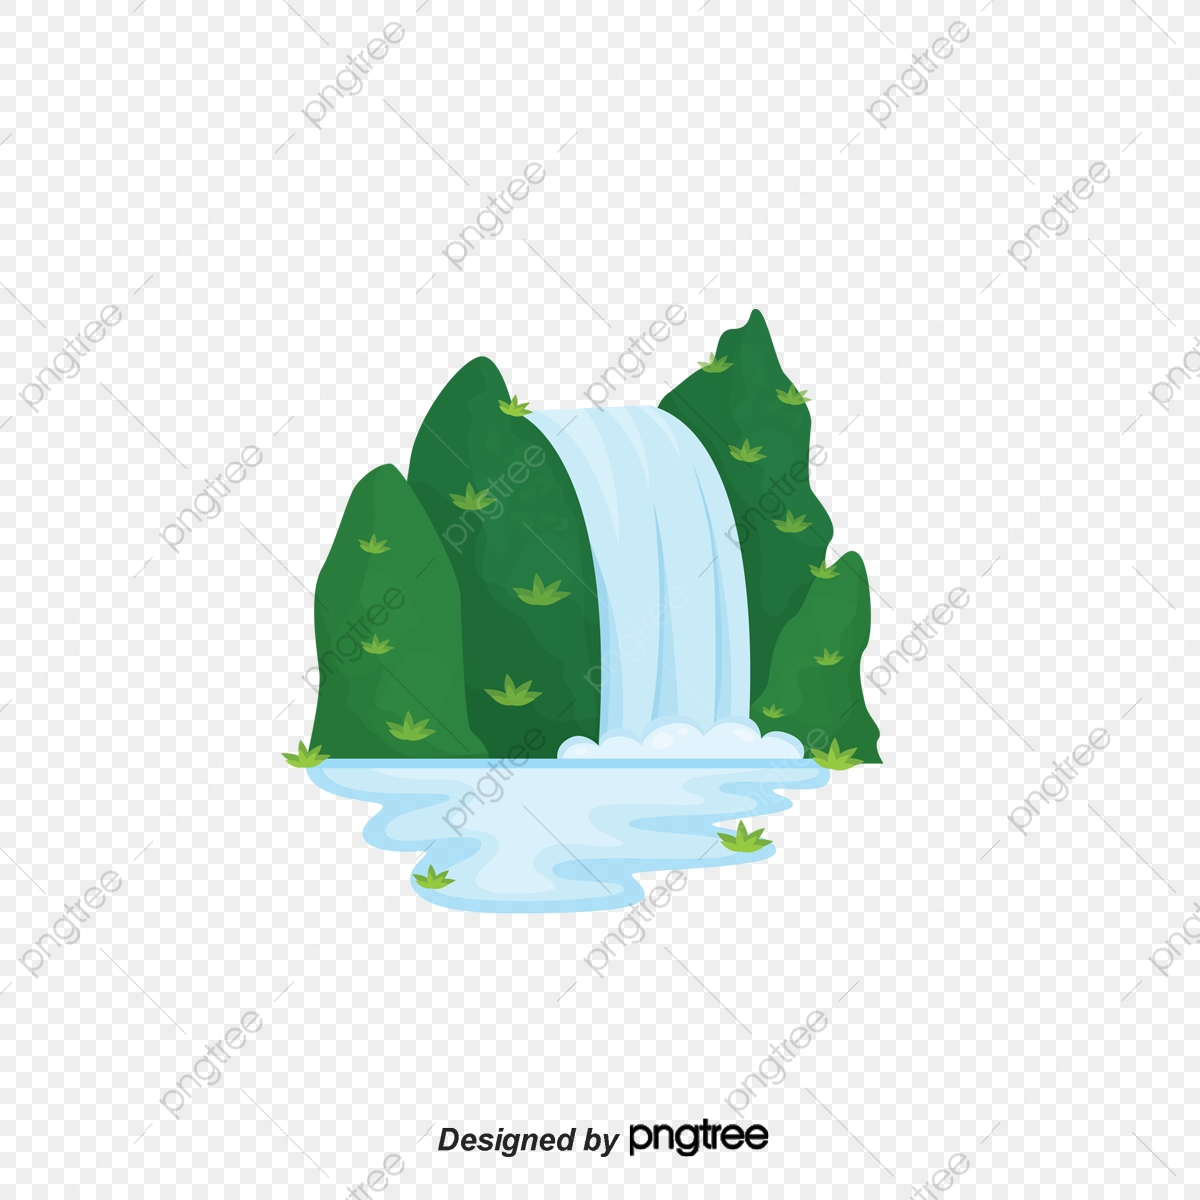 vector mountain river waterfall mountain mountain vector river vector vector png transparent clipart image and psd file for free download https pngtree com freepng vector mountain river waterfall mountain 2959100 html